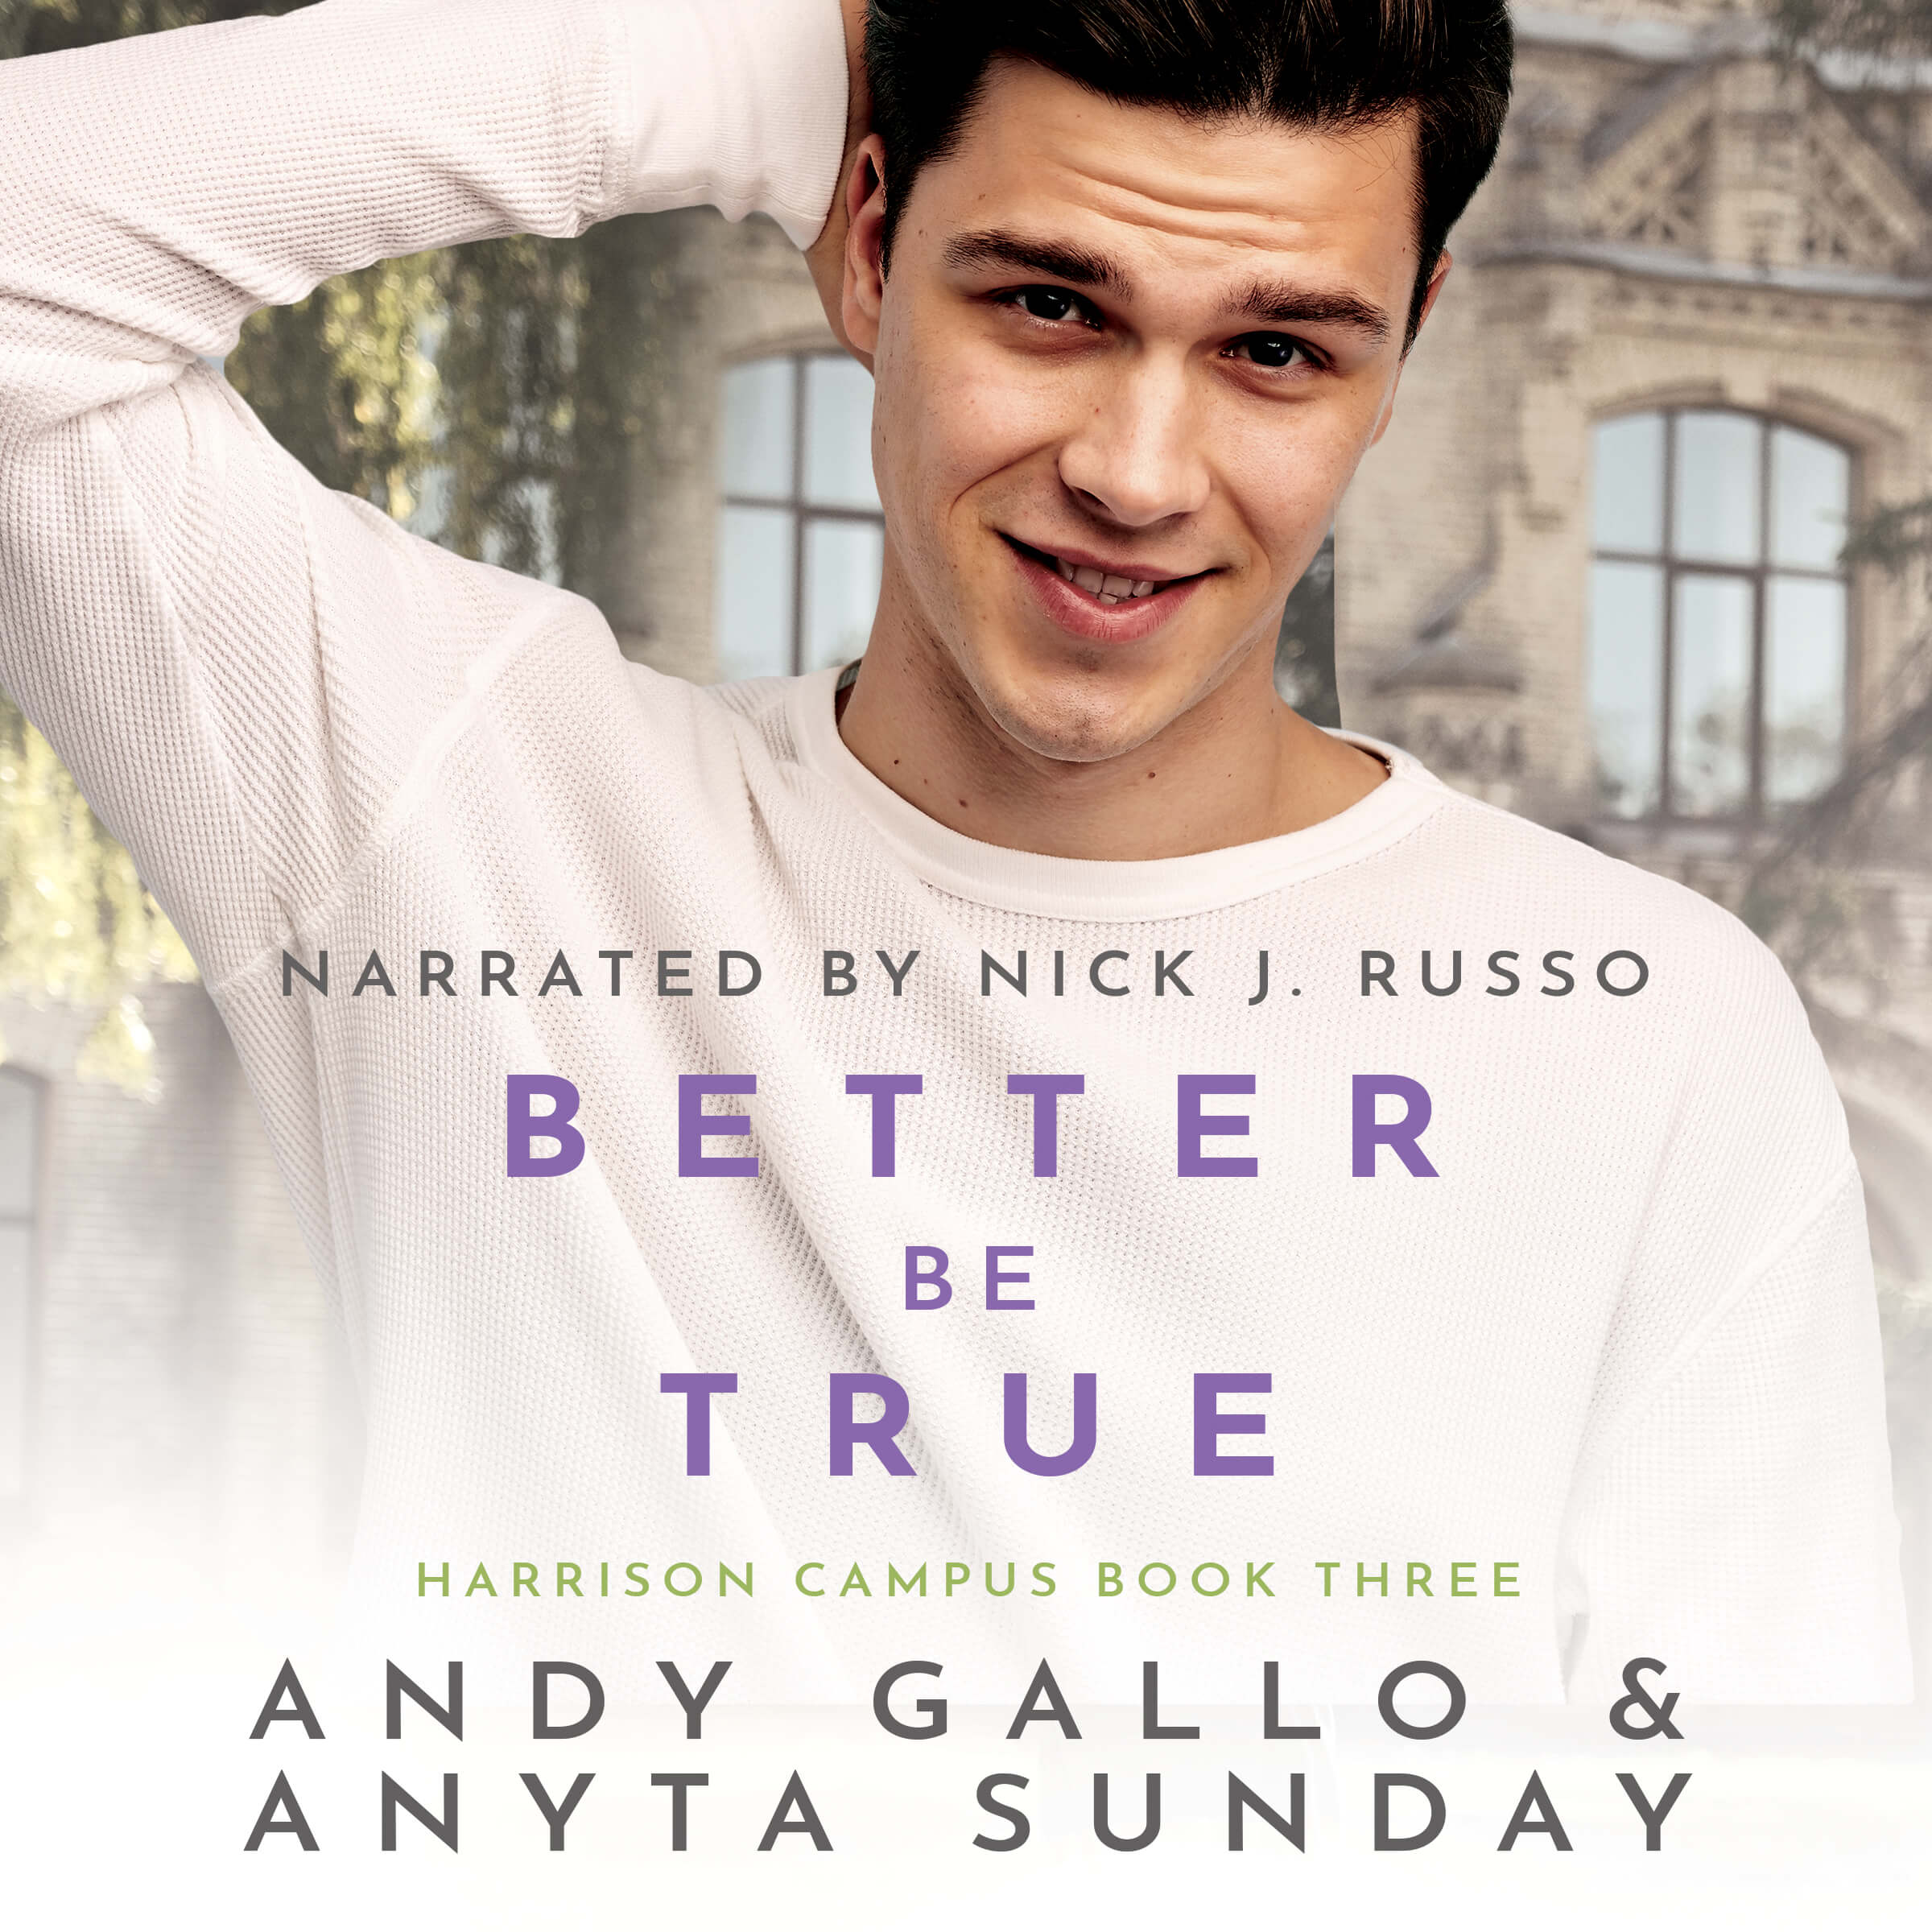 Audiobook of Gay Romance Novel Better be True by Anyta Sunday and Andy Gallo